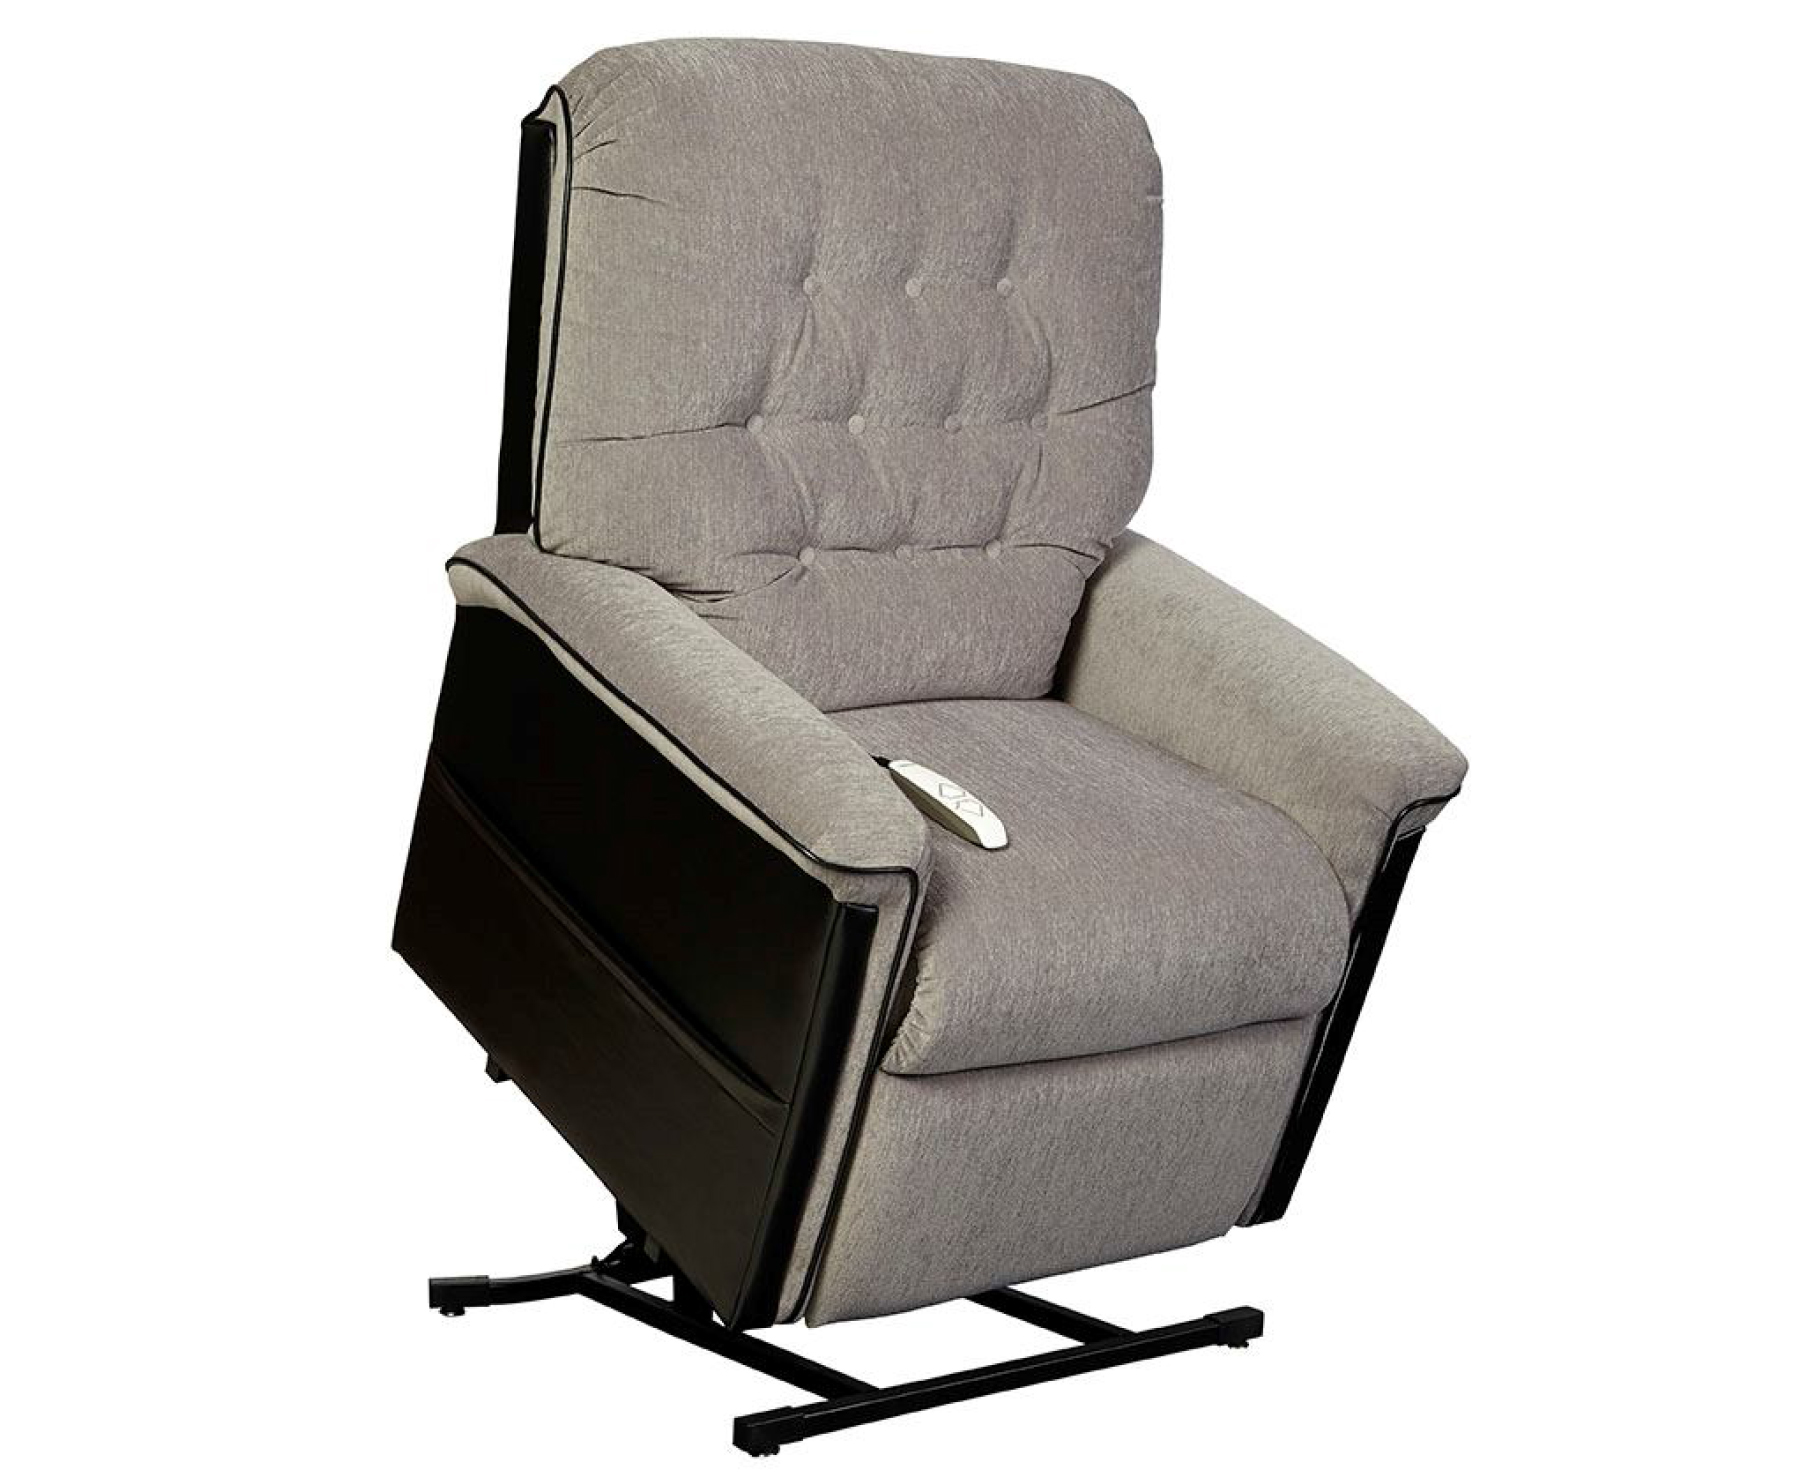 best heavy duty lift chairs maccabee costco windermere quinn nm1250 three position electric power